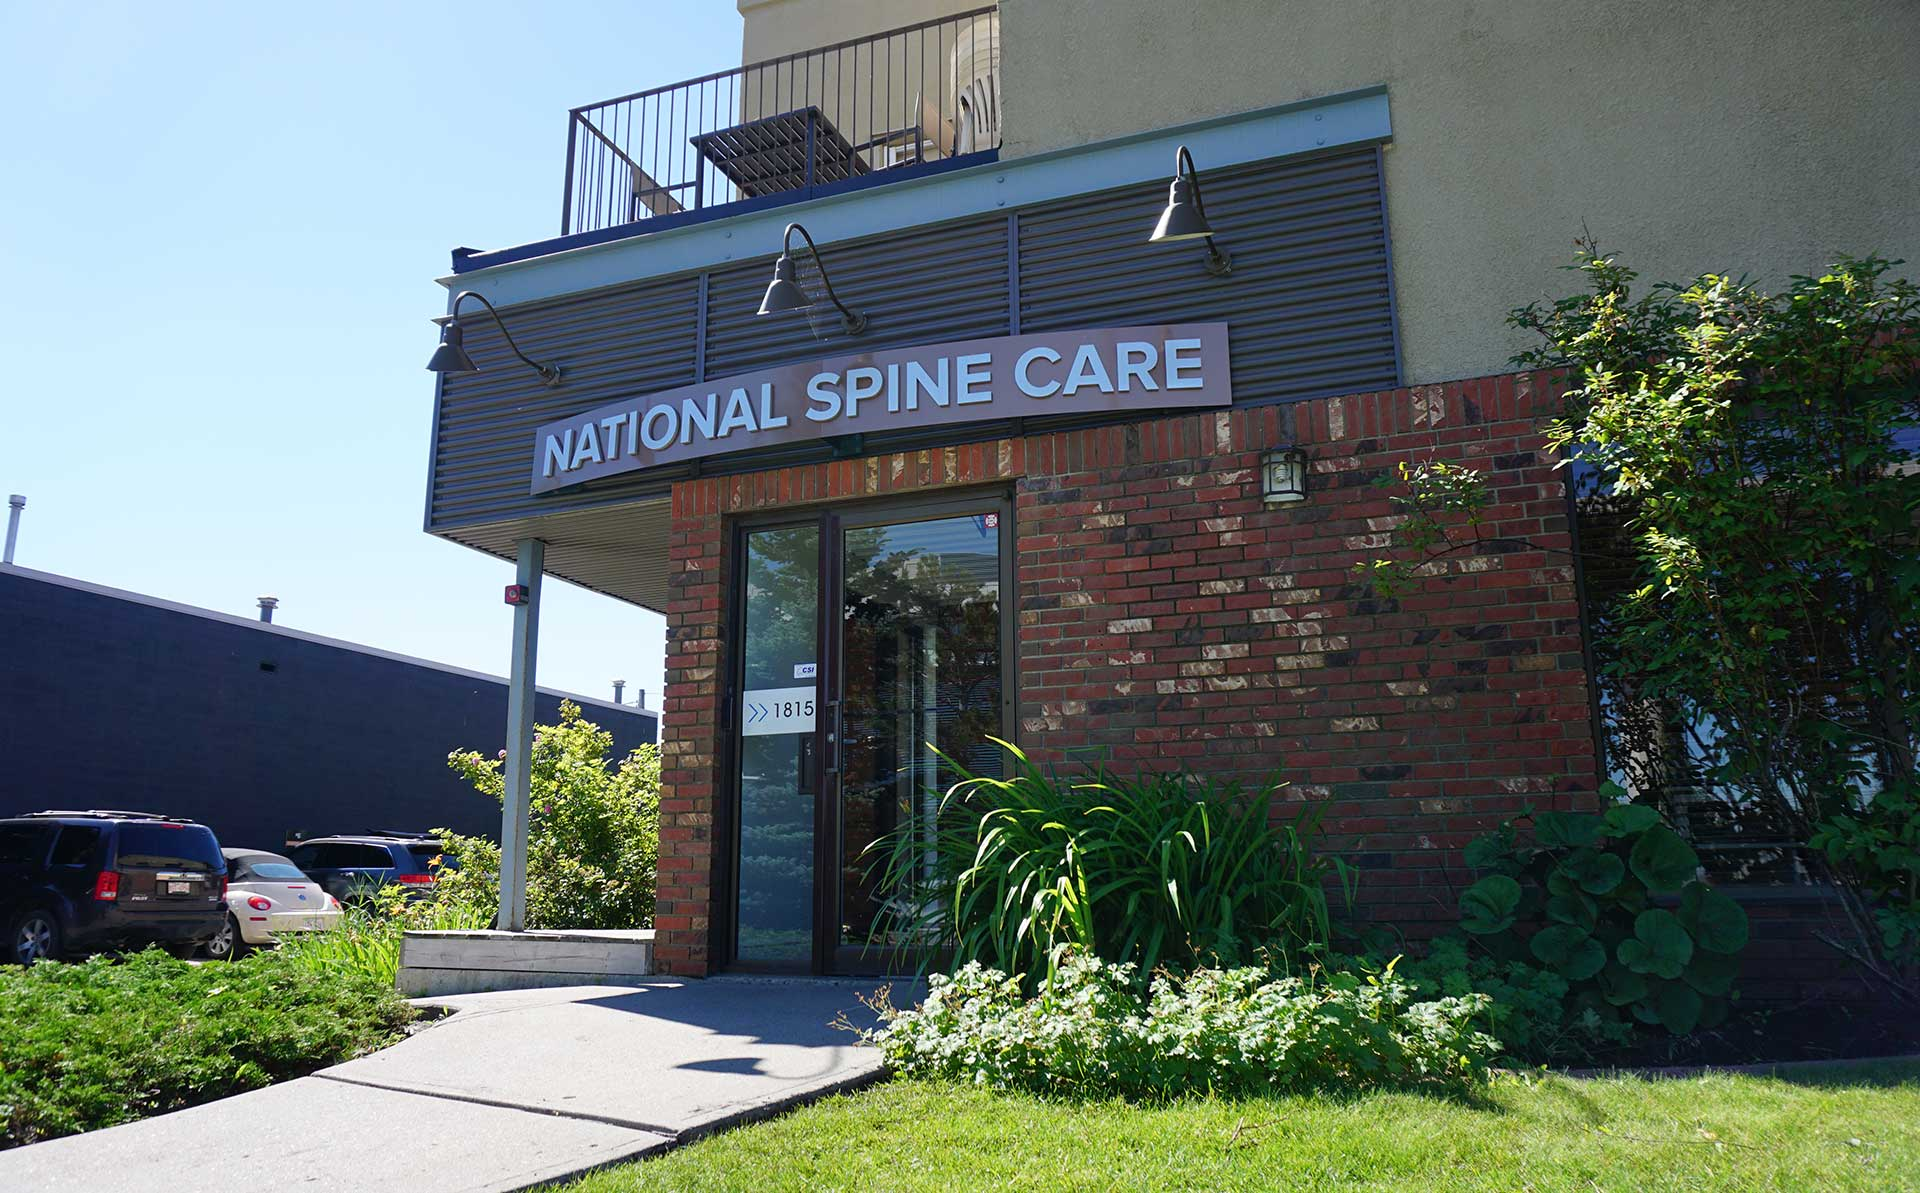 National Spine Care | Exterior Location